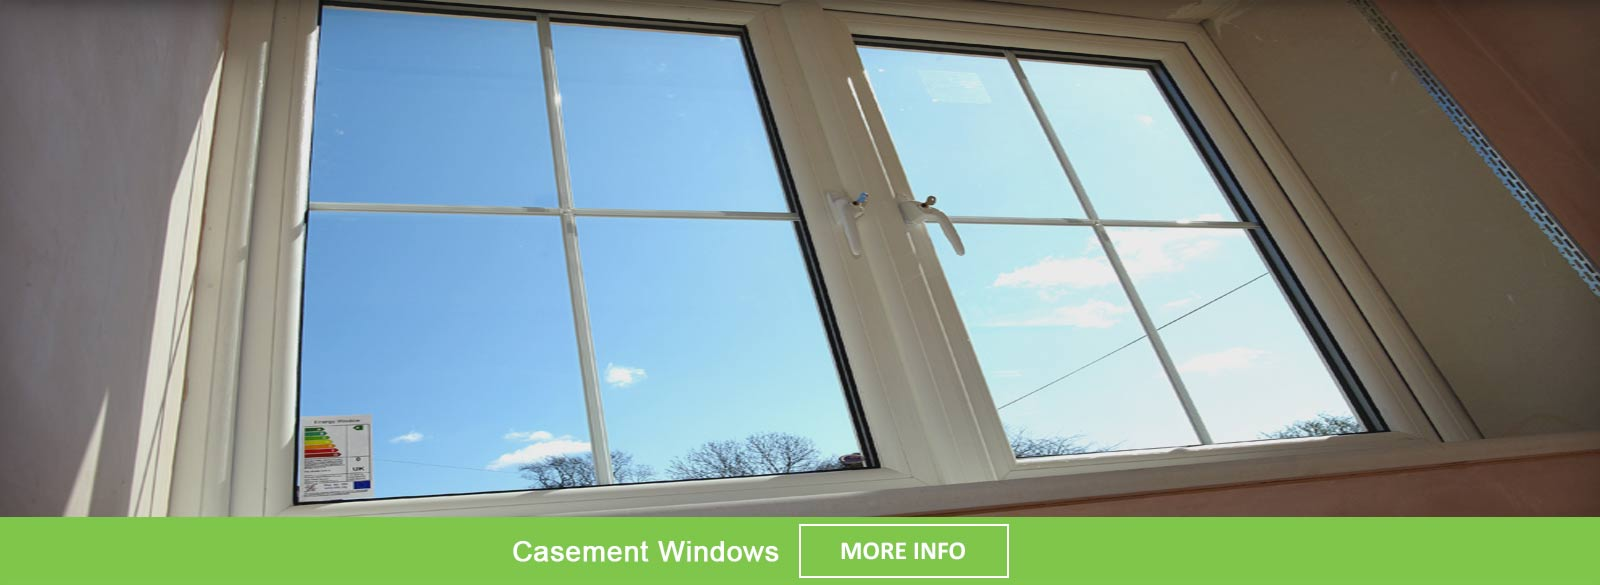 White PVCu casement window internal view